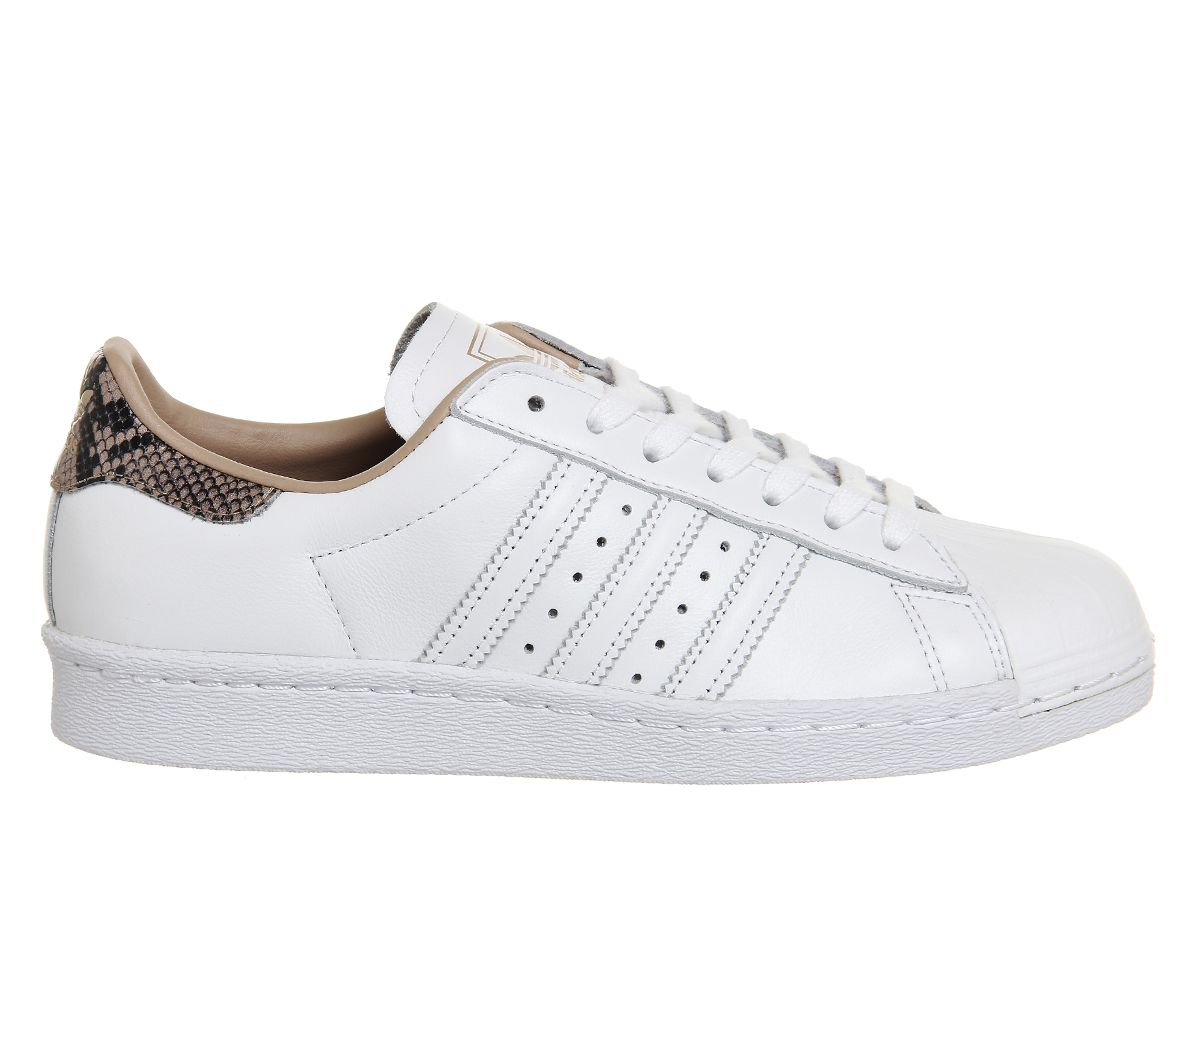 Buy White Rose Snake Exclusive Adidas Superstar 80s from OFFICE.co.uk.